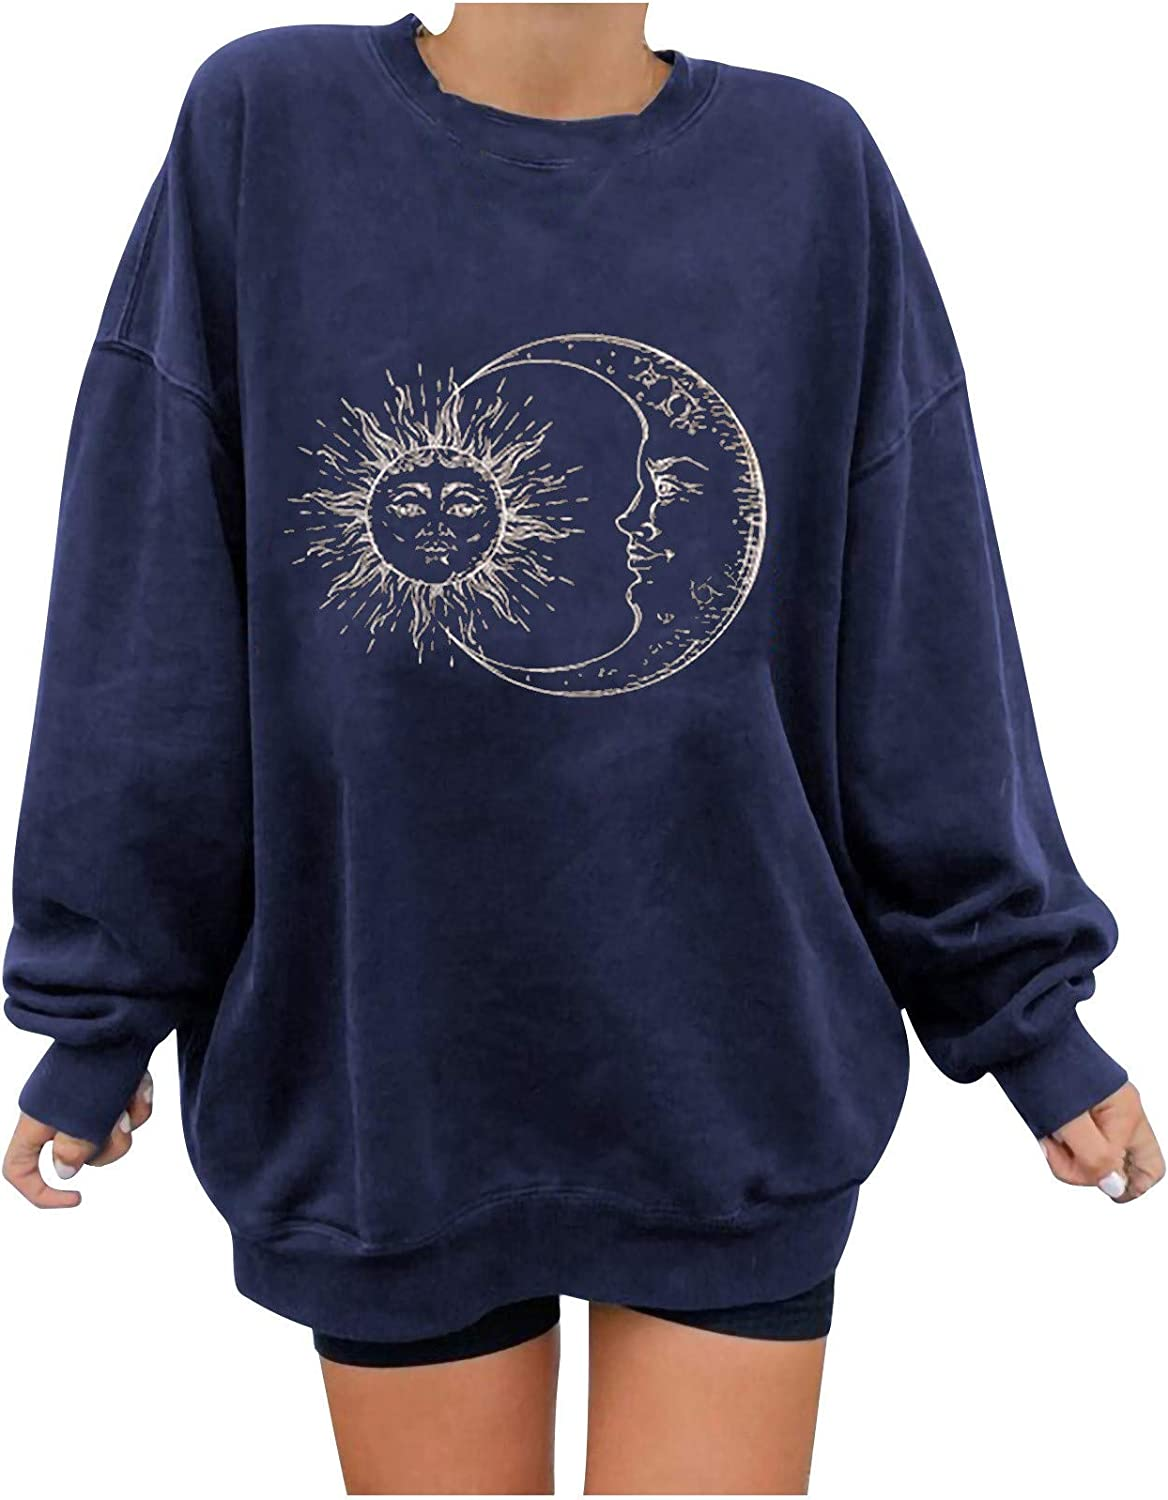 Womens Save money Short Sleeve T Shirt Vintage Nature Sun 67% OFF of fixed price and Moon Graphic